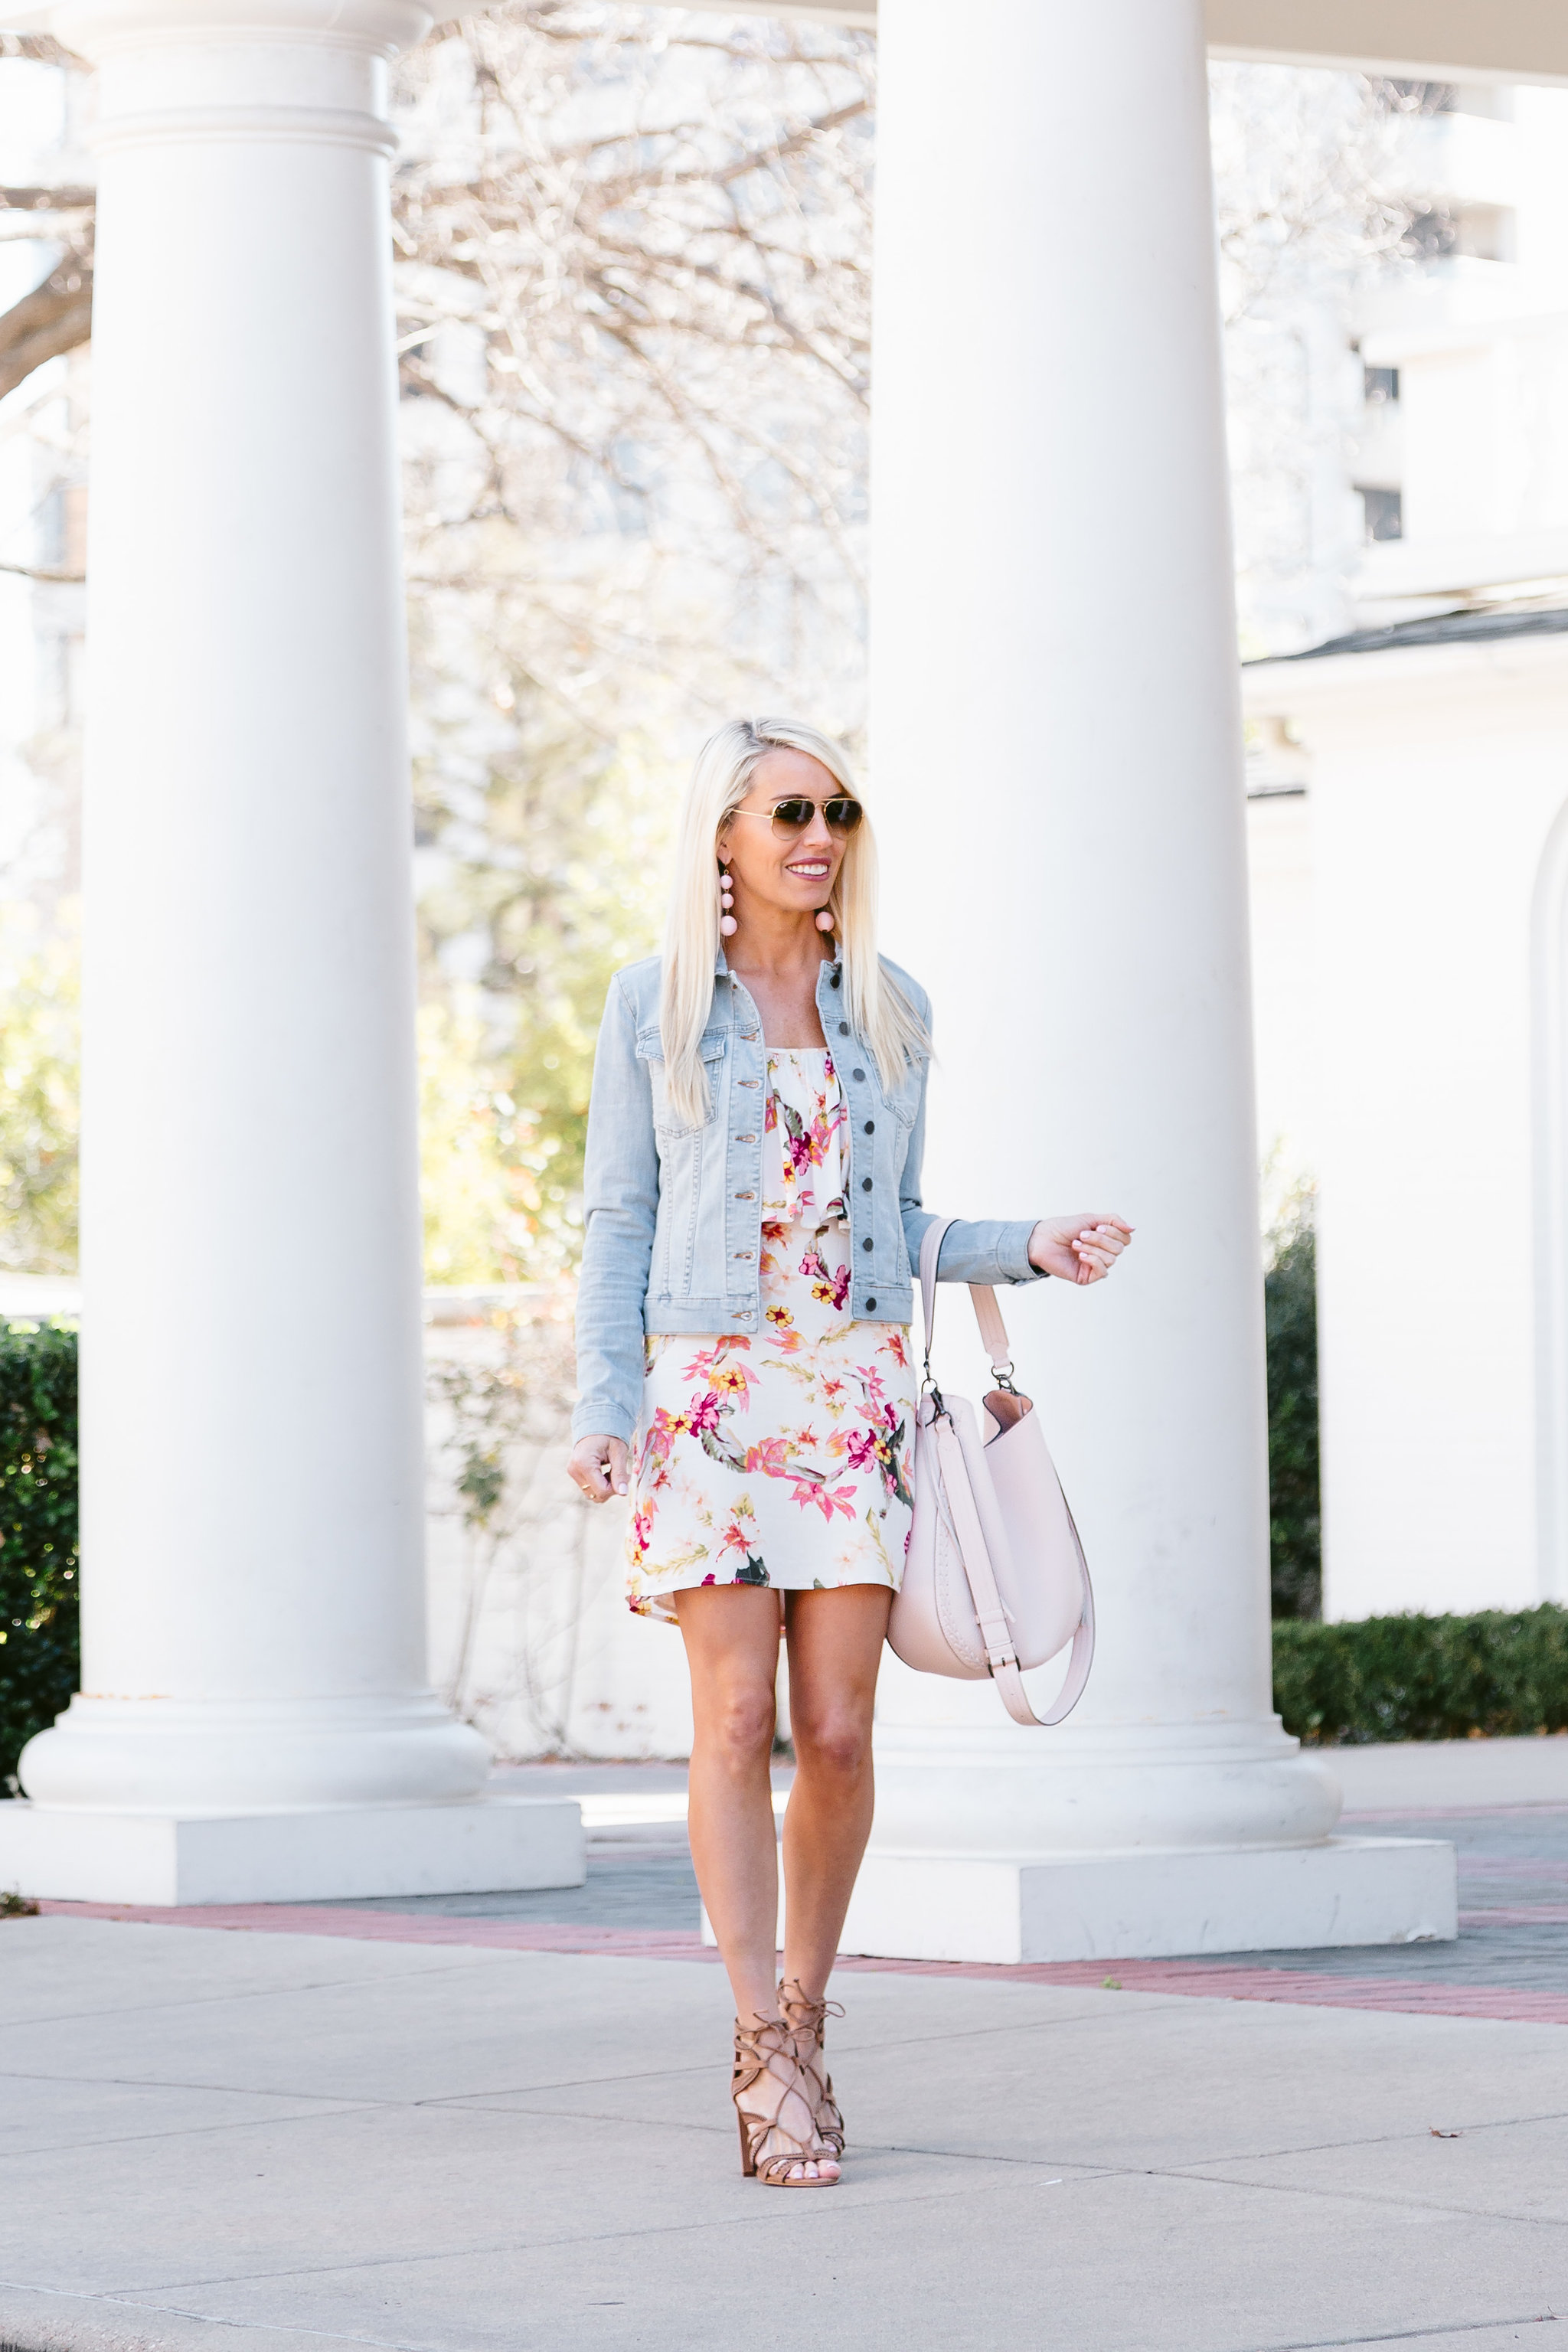 64de3529f4 3 ways to wear these lace-up sandals and denim jacket and look stylish